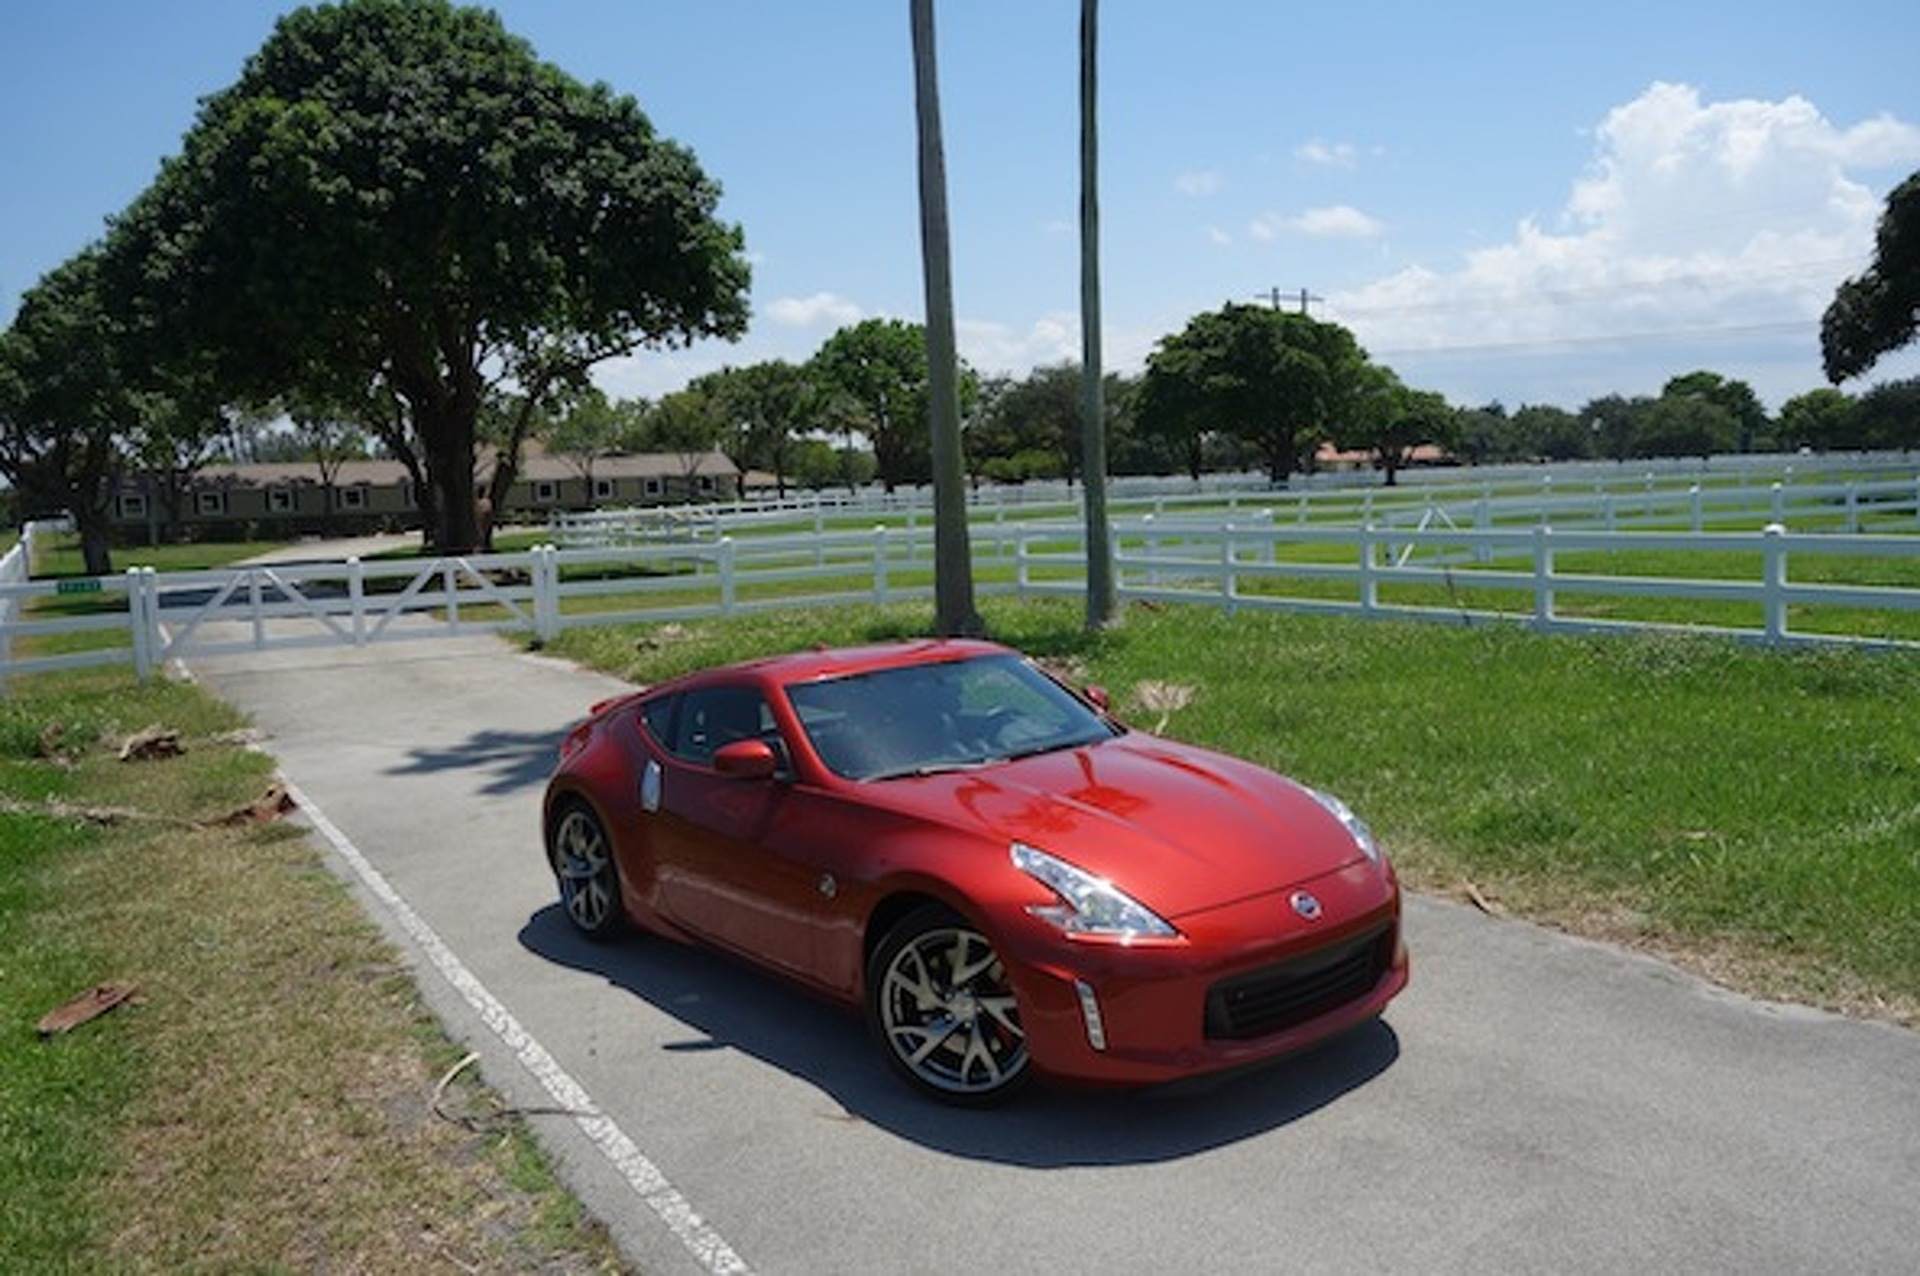 Nissan 370Z Review: A Pretty Face, Lacking Pace